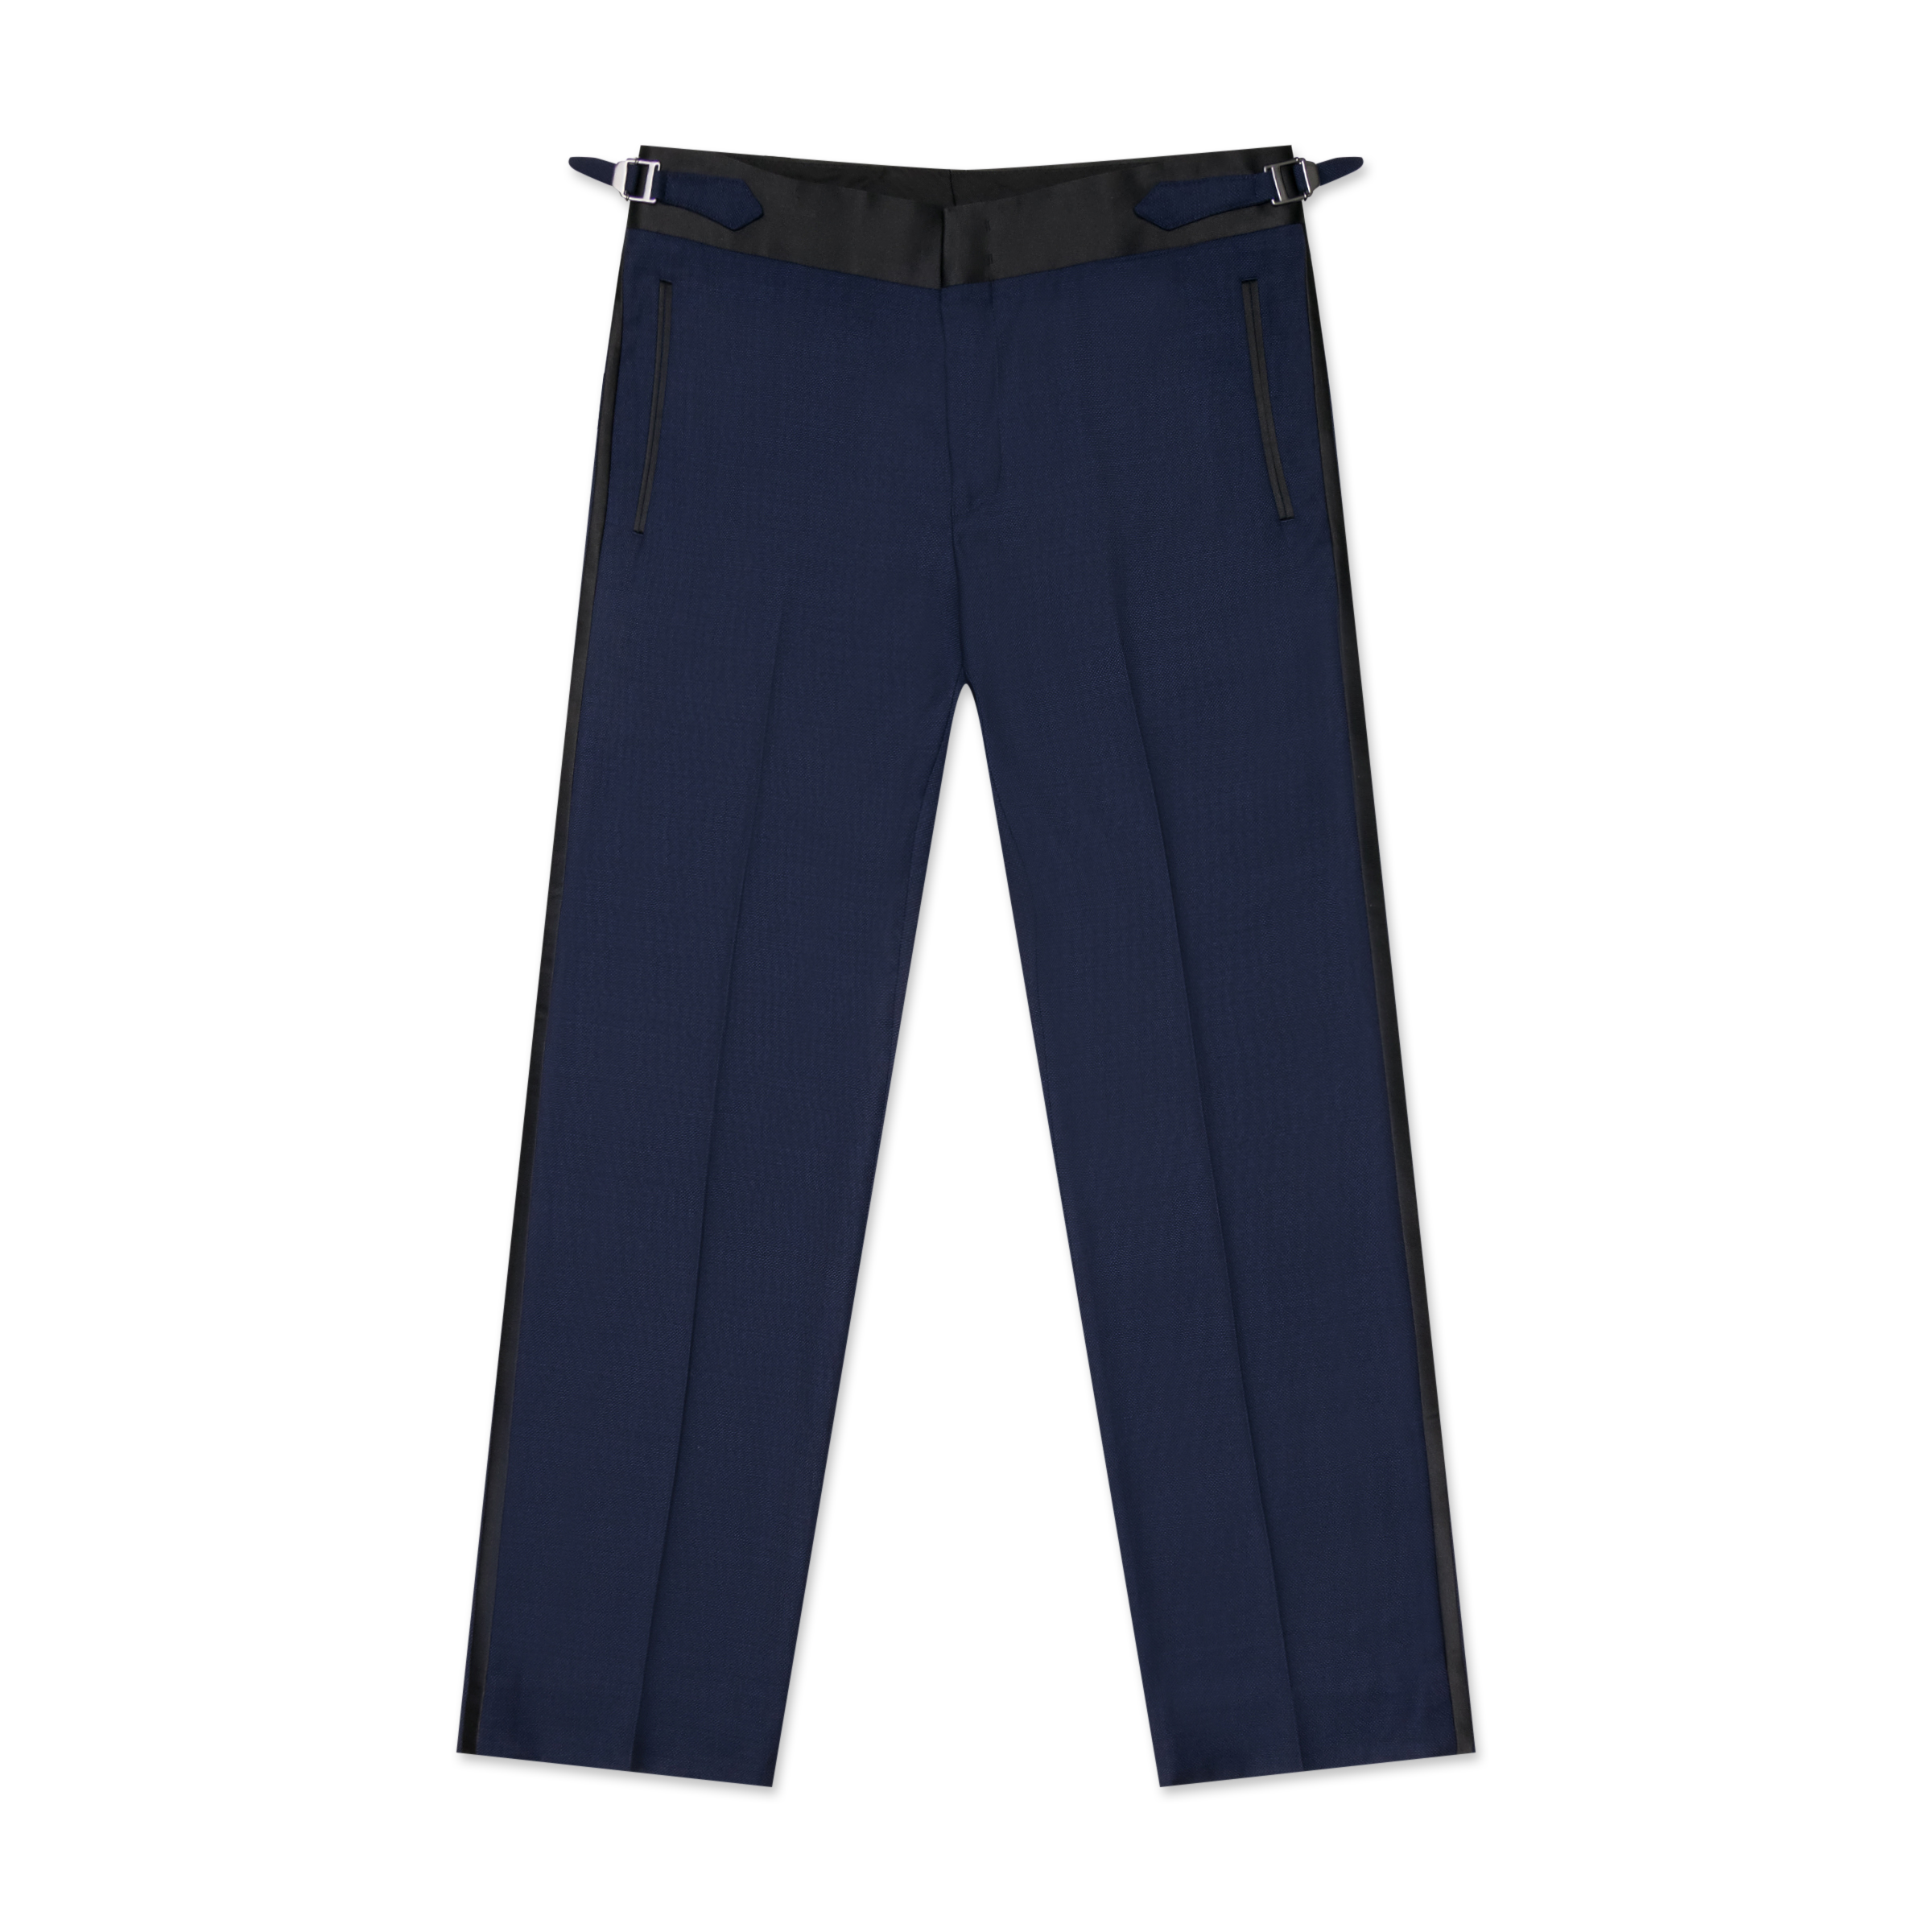 Flat lay pants product image